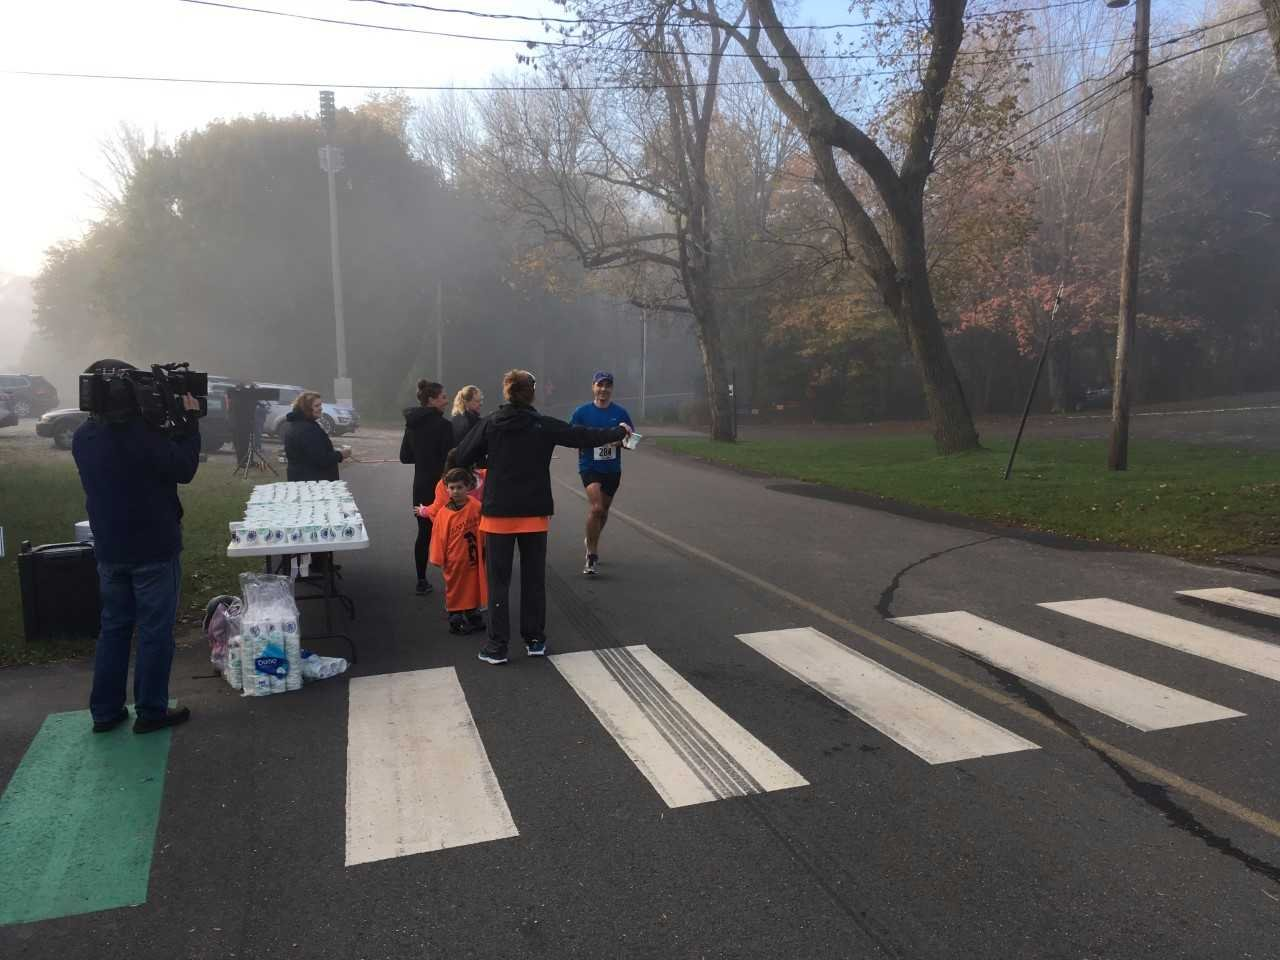 The Essex Steam Train half-marathon and relay was on Saturday and hundreds of runners participated in the 13.1 mile long race.